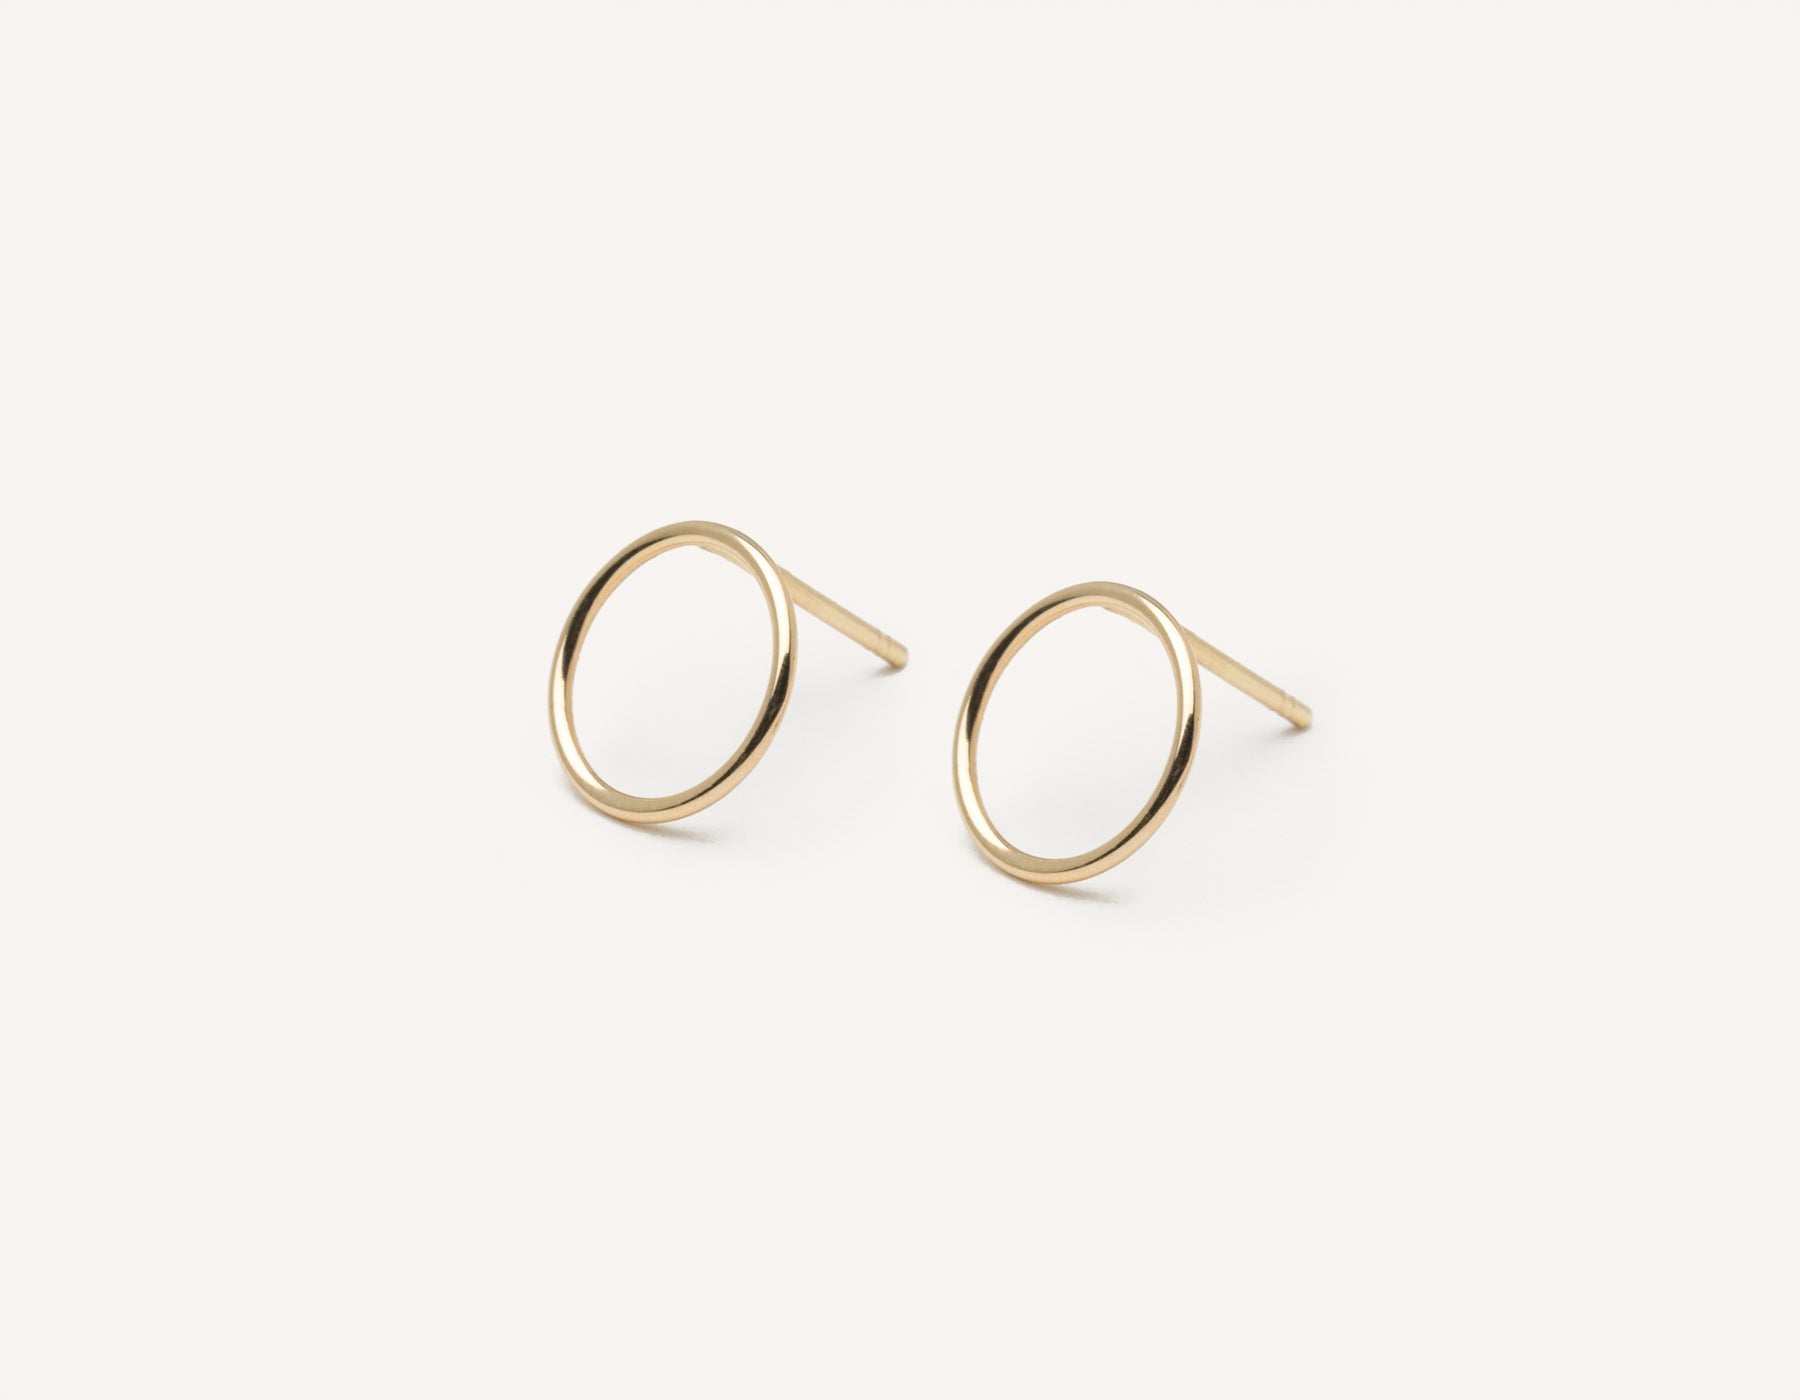 Vrai and Oro modern minimalist Circle Studs 14k solid gold post earrings , 14K Yellow Gold